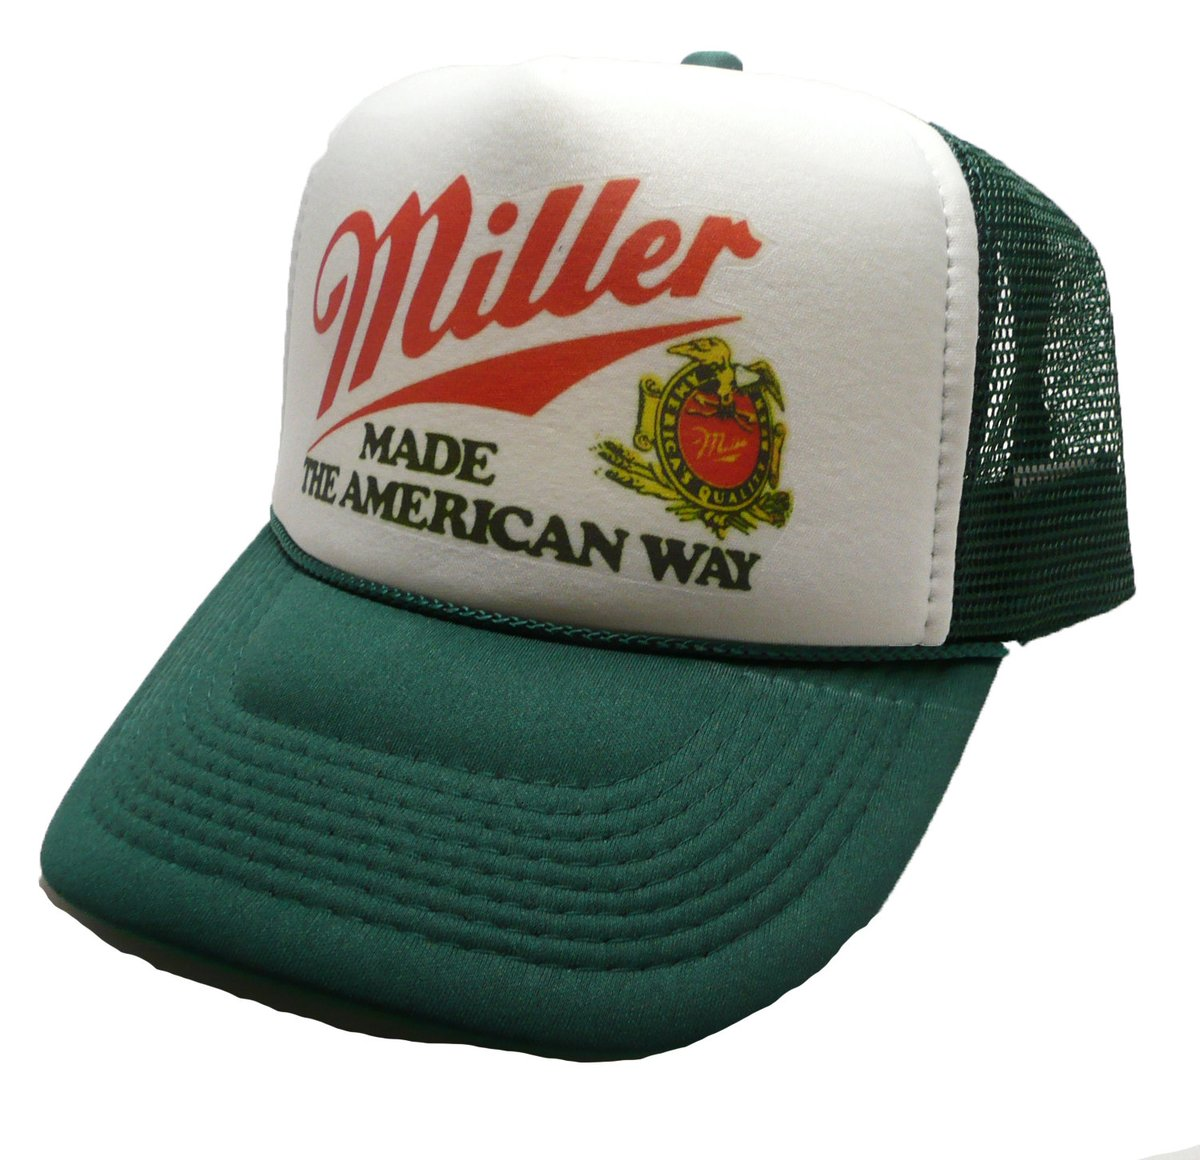 Excited to share the latest addition to my #etsy shop: Miller Beer Trucker Hat mesh hat snap back hat Dark Green new adjustable Made the American way  #accessories #hat #green #white #bachelorparty #christmas #rocker #millerbeerhat #millerbeer